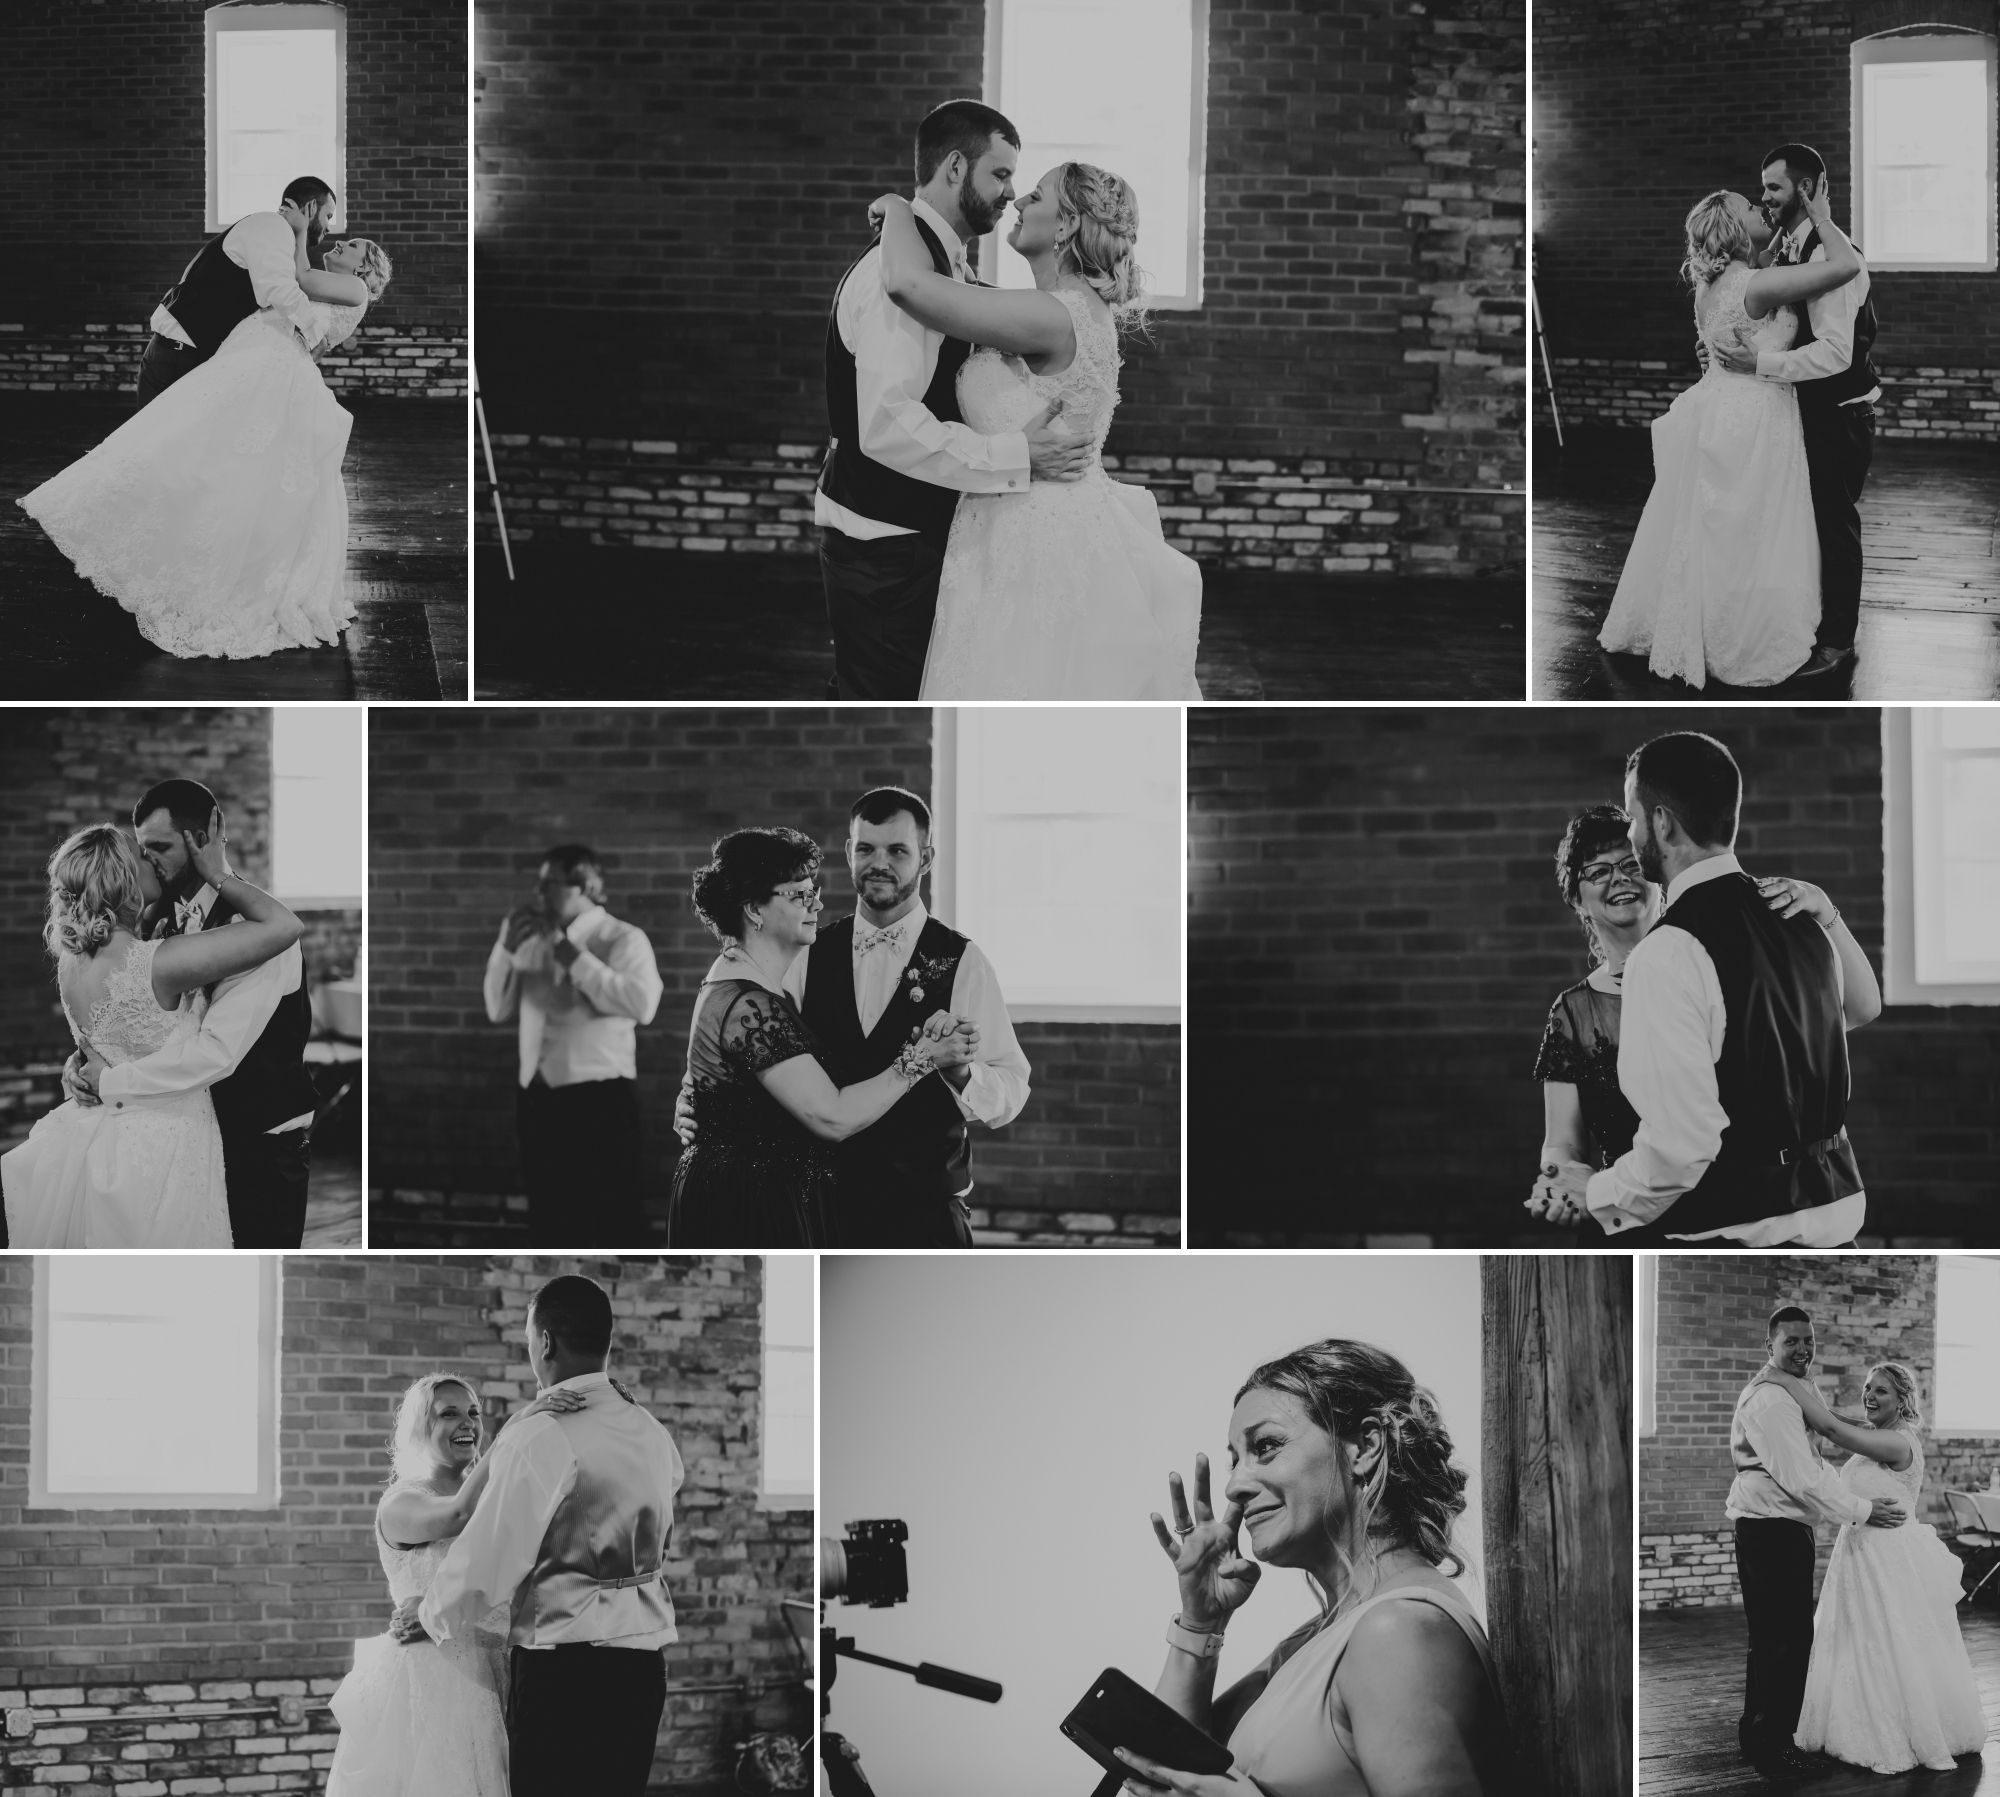 Black and white collage of the bride and groom dancing together then with groom's mom and bride's brother.